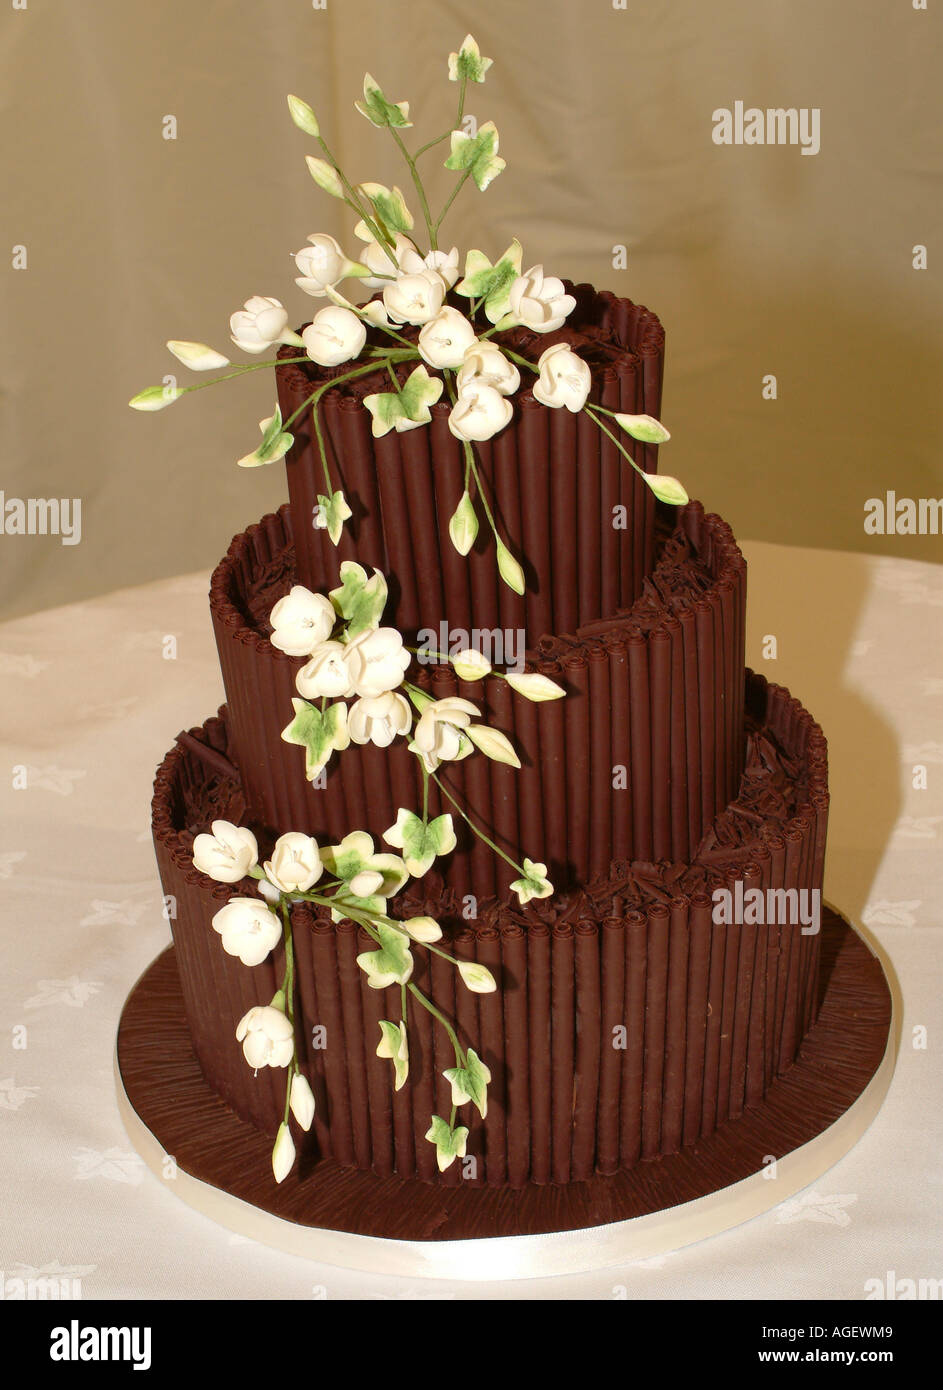 Tiered Chocolate Wedding Cake Decorated With White Edible